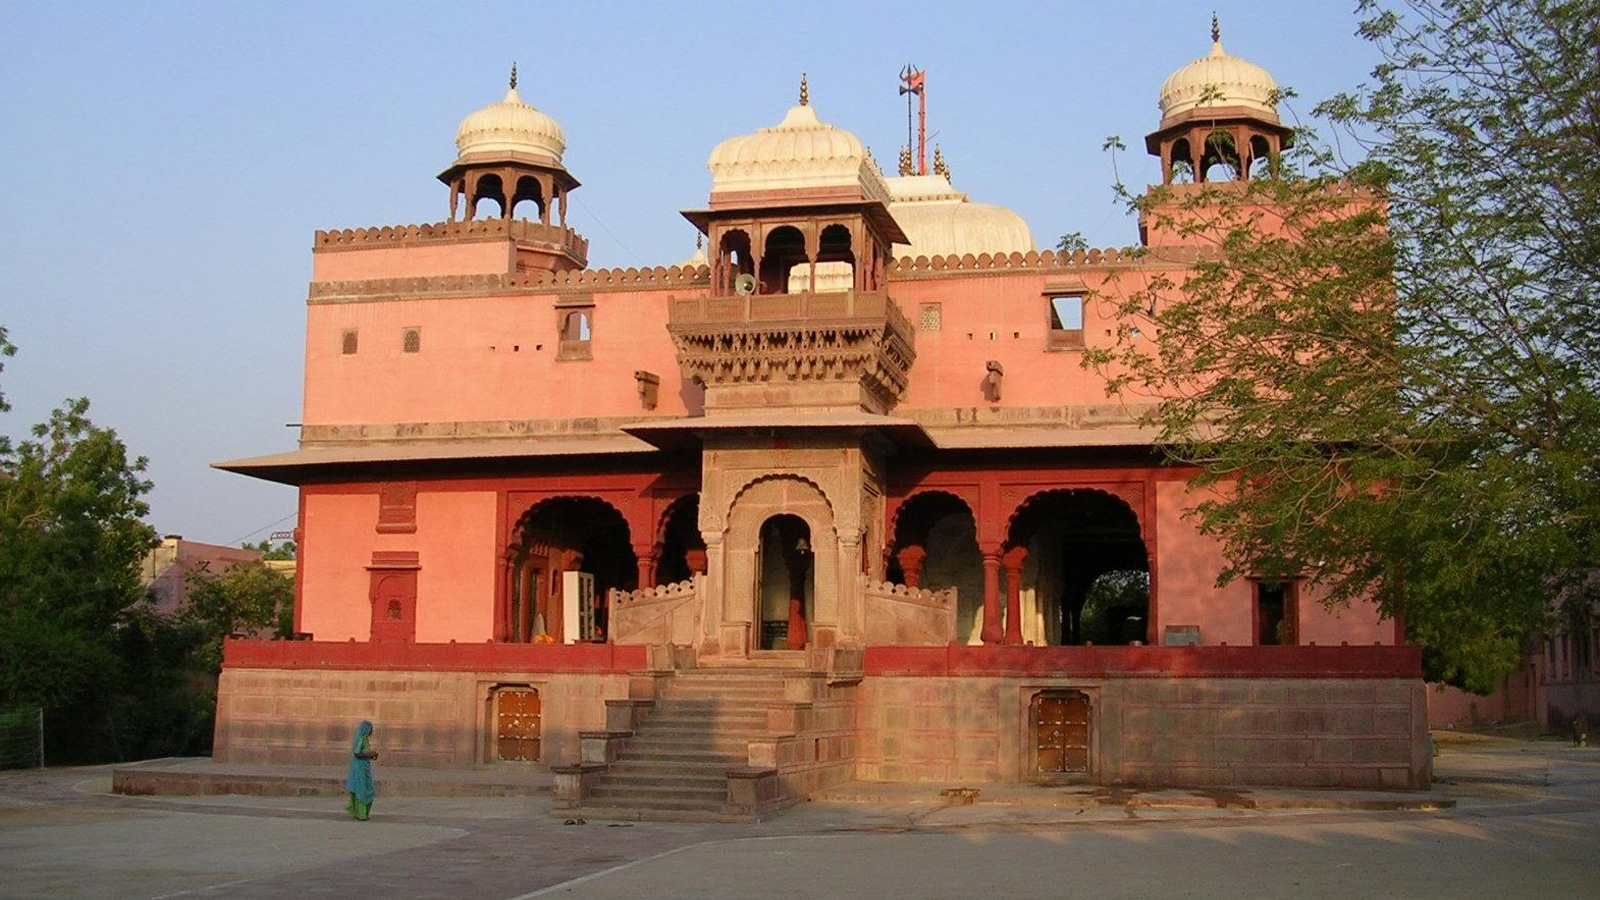 View of Shvibari Temple, Bikaner